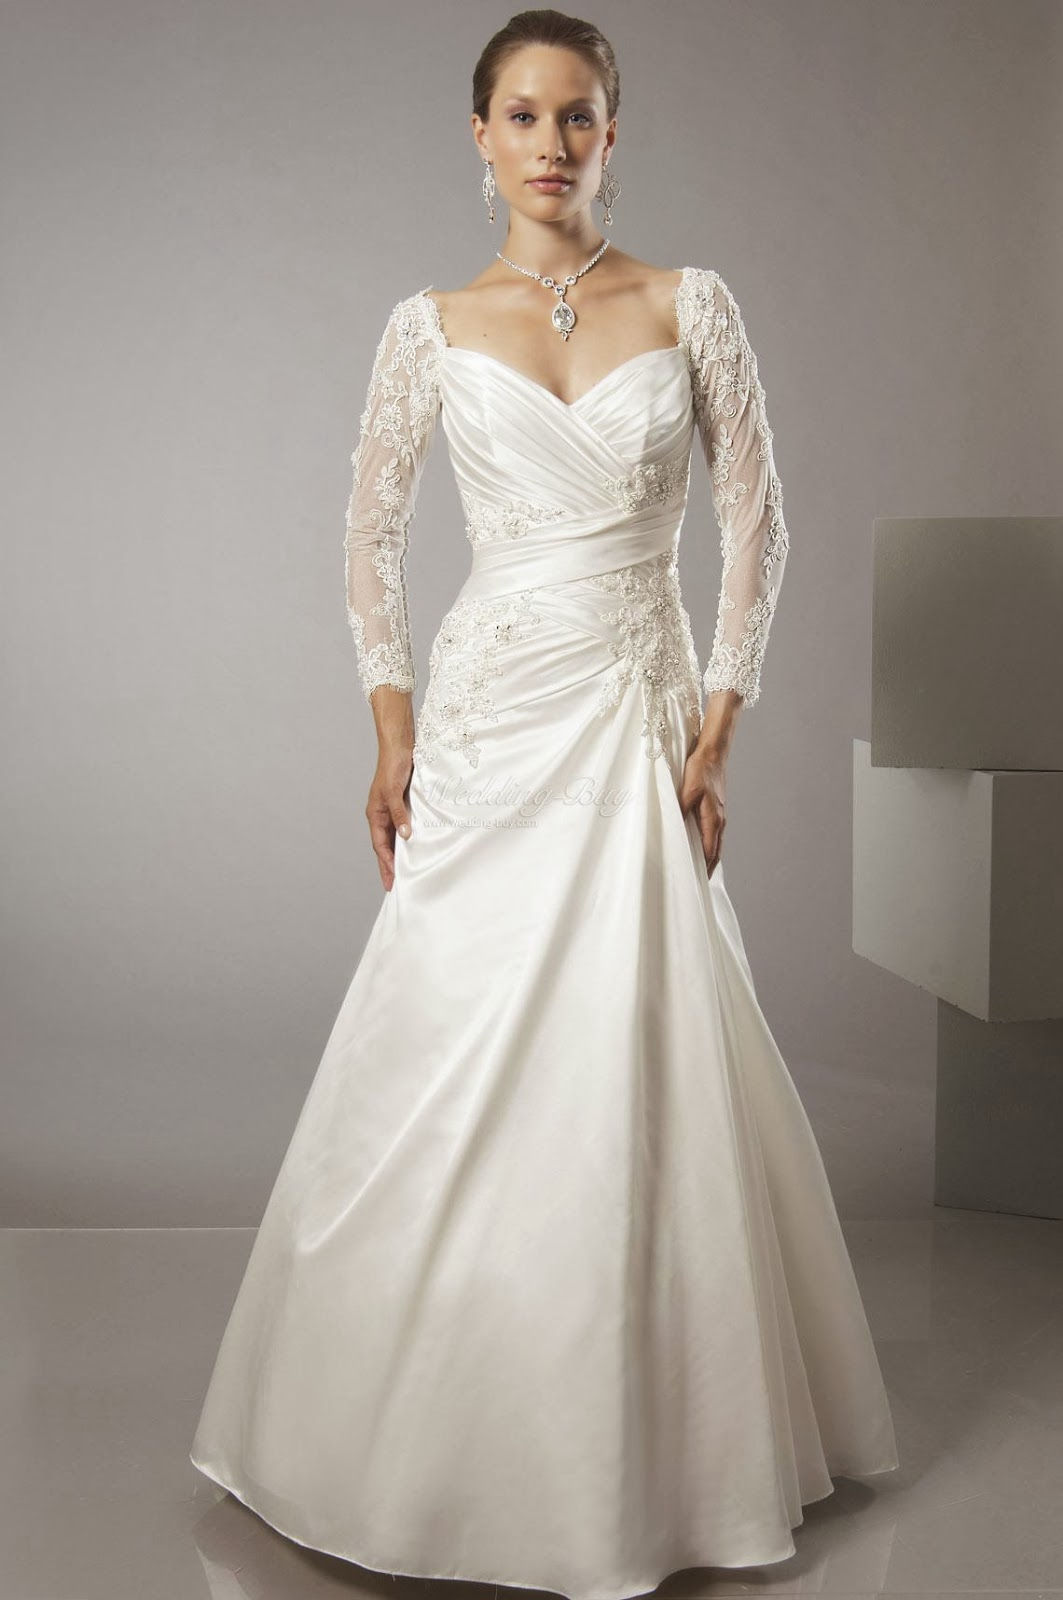 Wedding Dresses For Older Brides 2nd Marriage Best Dresses 2019